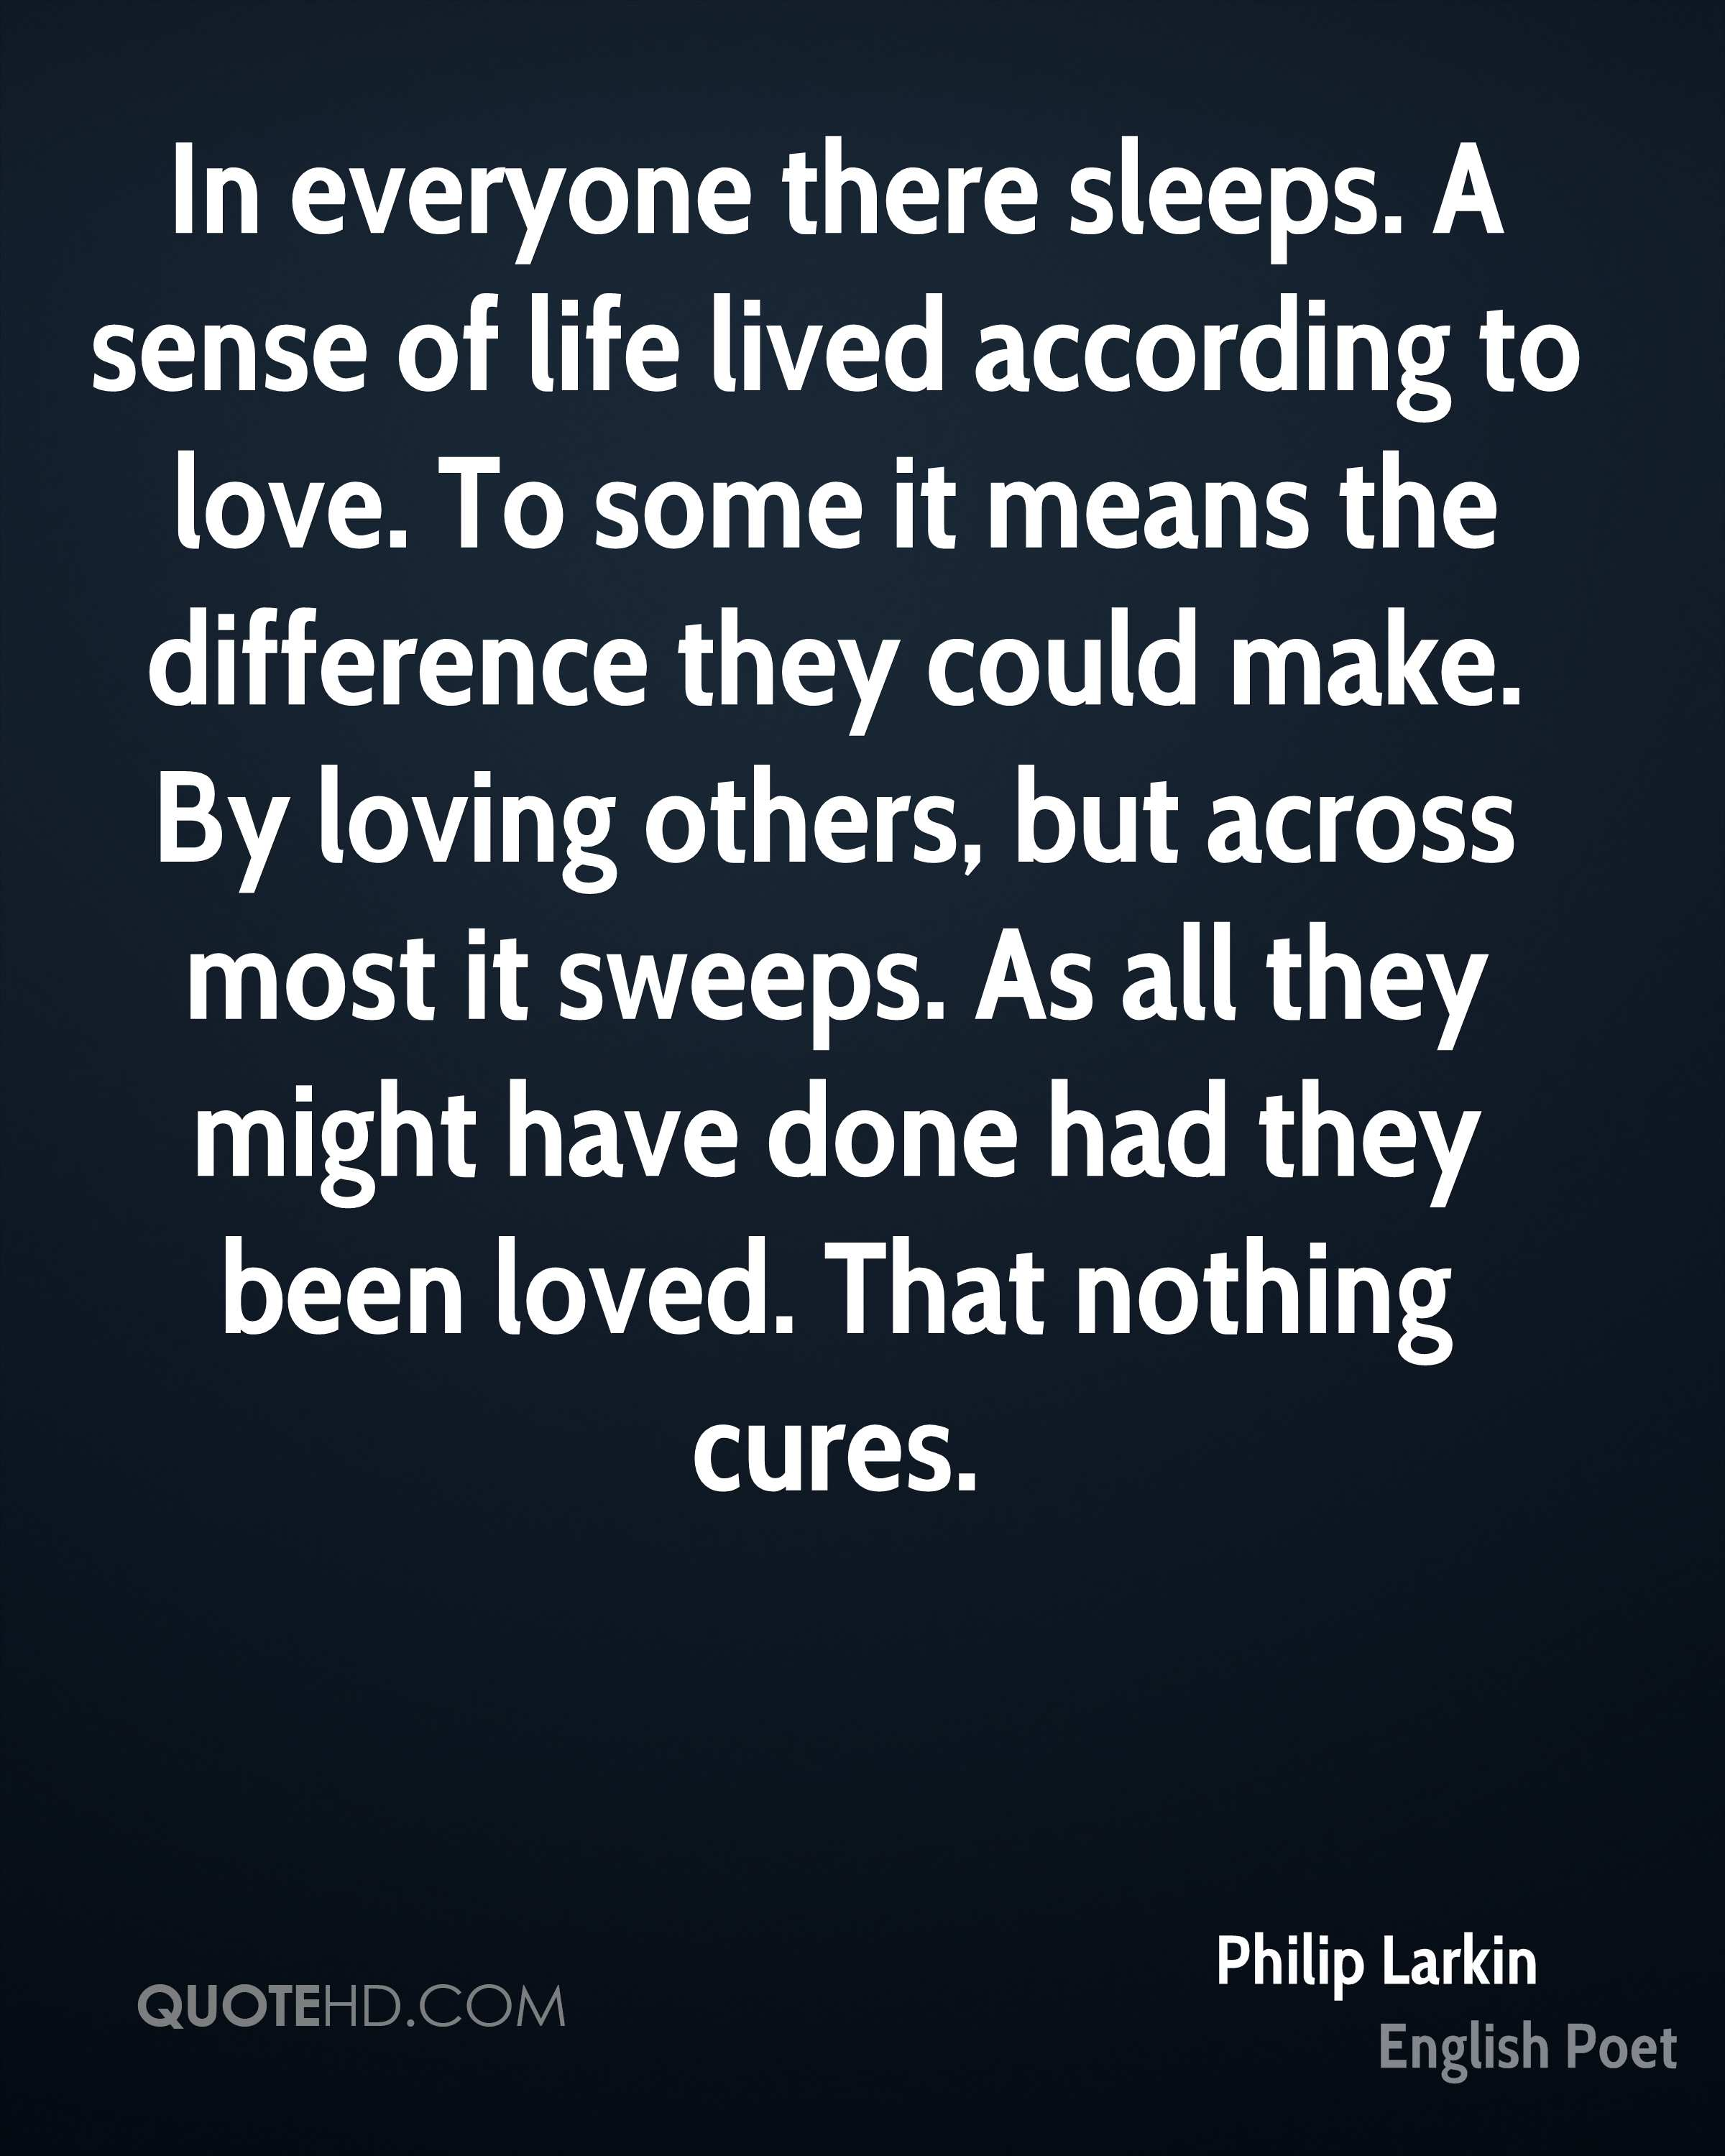 In everyone there sleeps. A sense of life lived according to love. To some it means the difference they could make. By loving others, but across most it sweeps. As all they might have done had they been loved. That nothing cures.